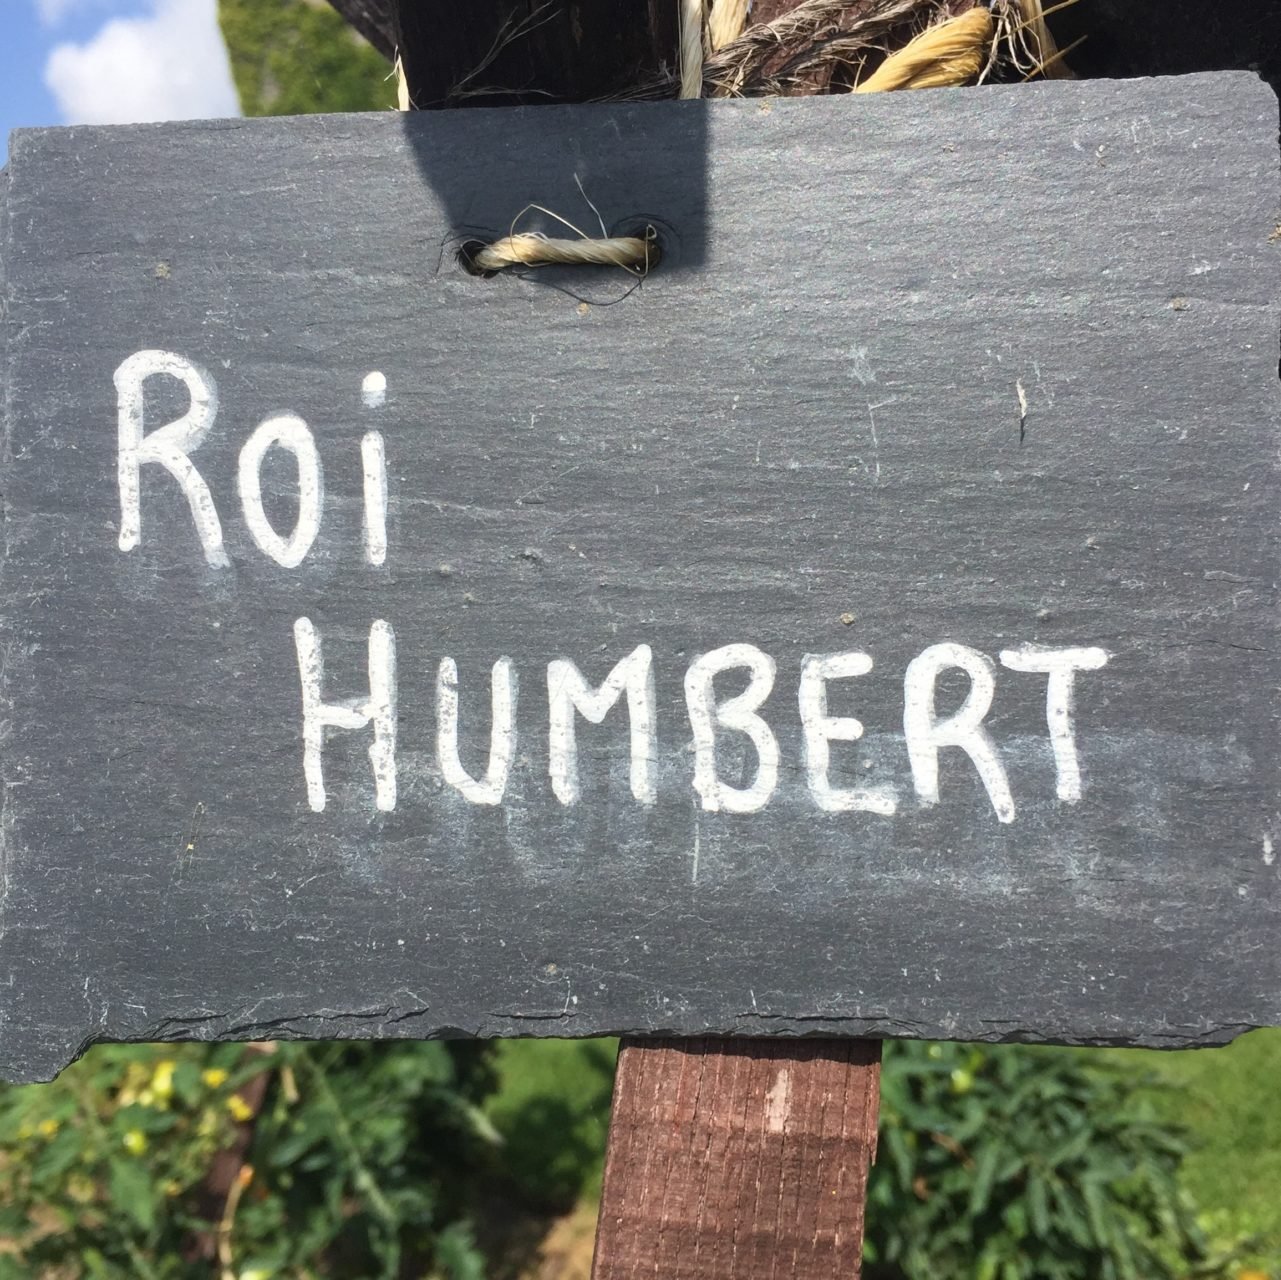 Roi Humbert is a type of tomato grown at Chateau Bourdaisiere